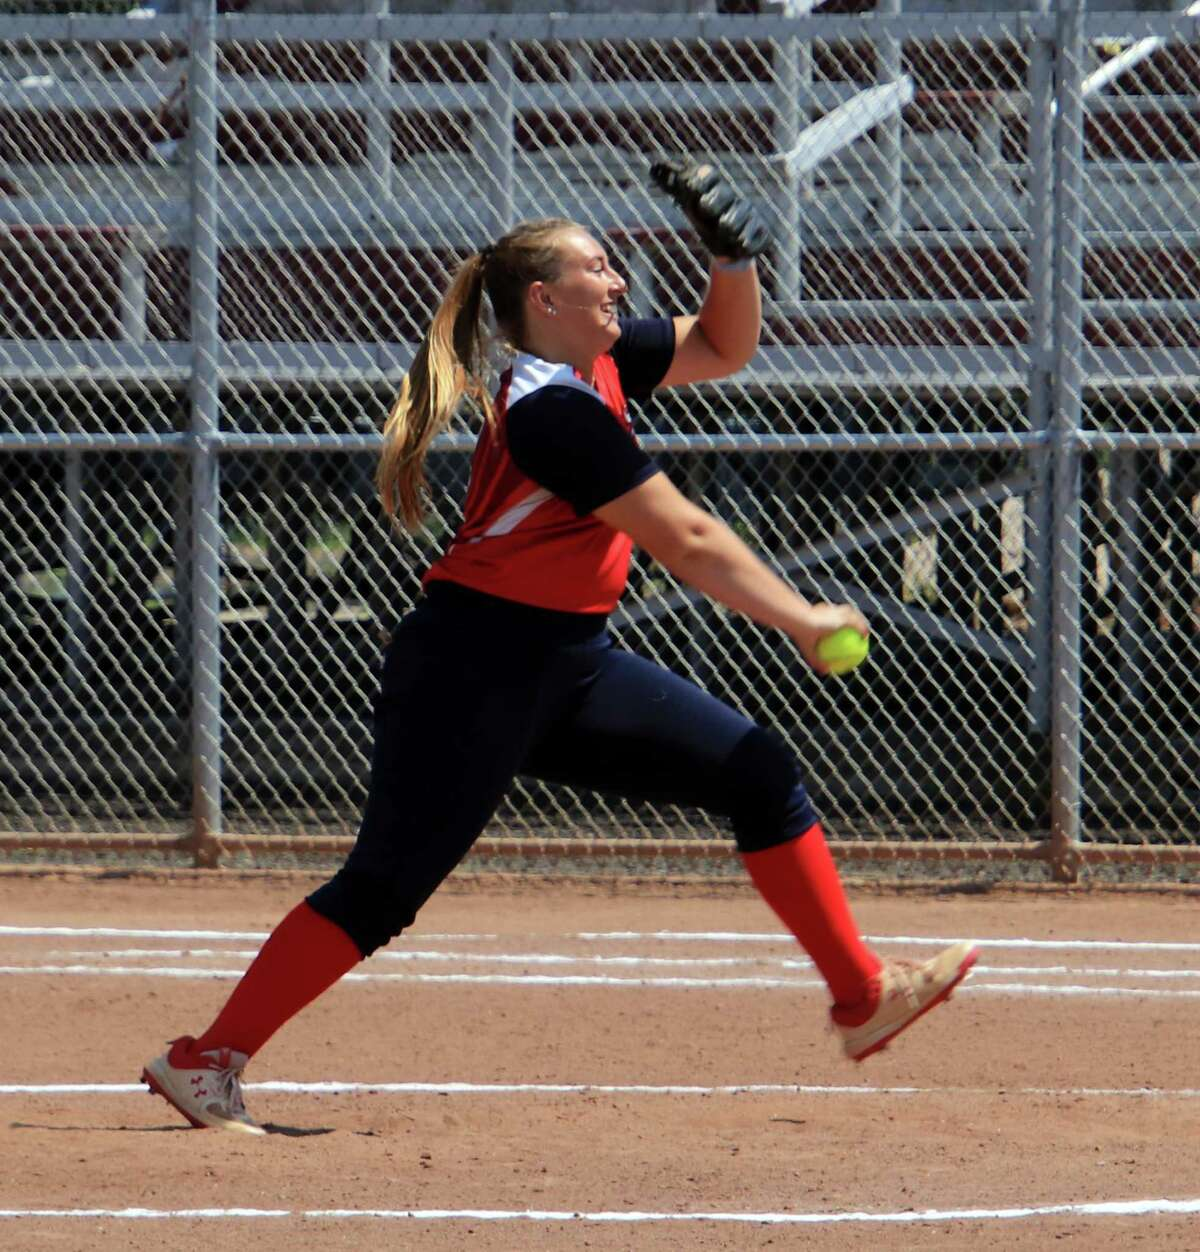 Pitcher Ali DuBois, seen here in 2020, and the Brakettes softball team were crowned WMS national champions on Sunday.